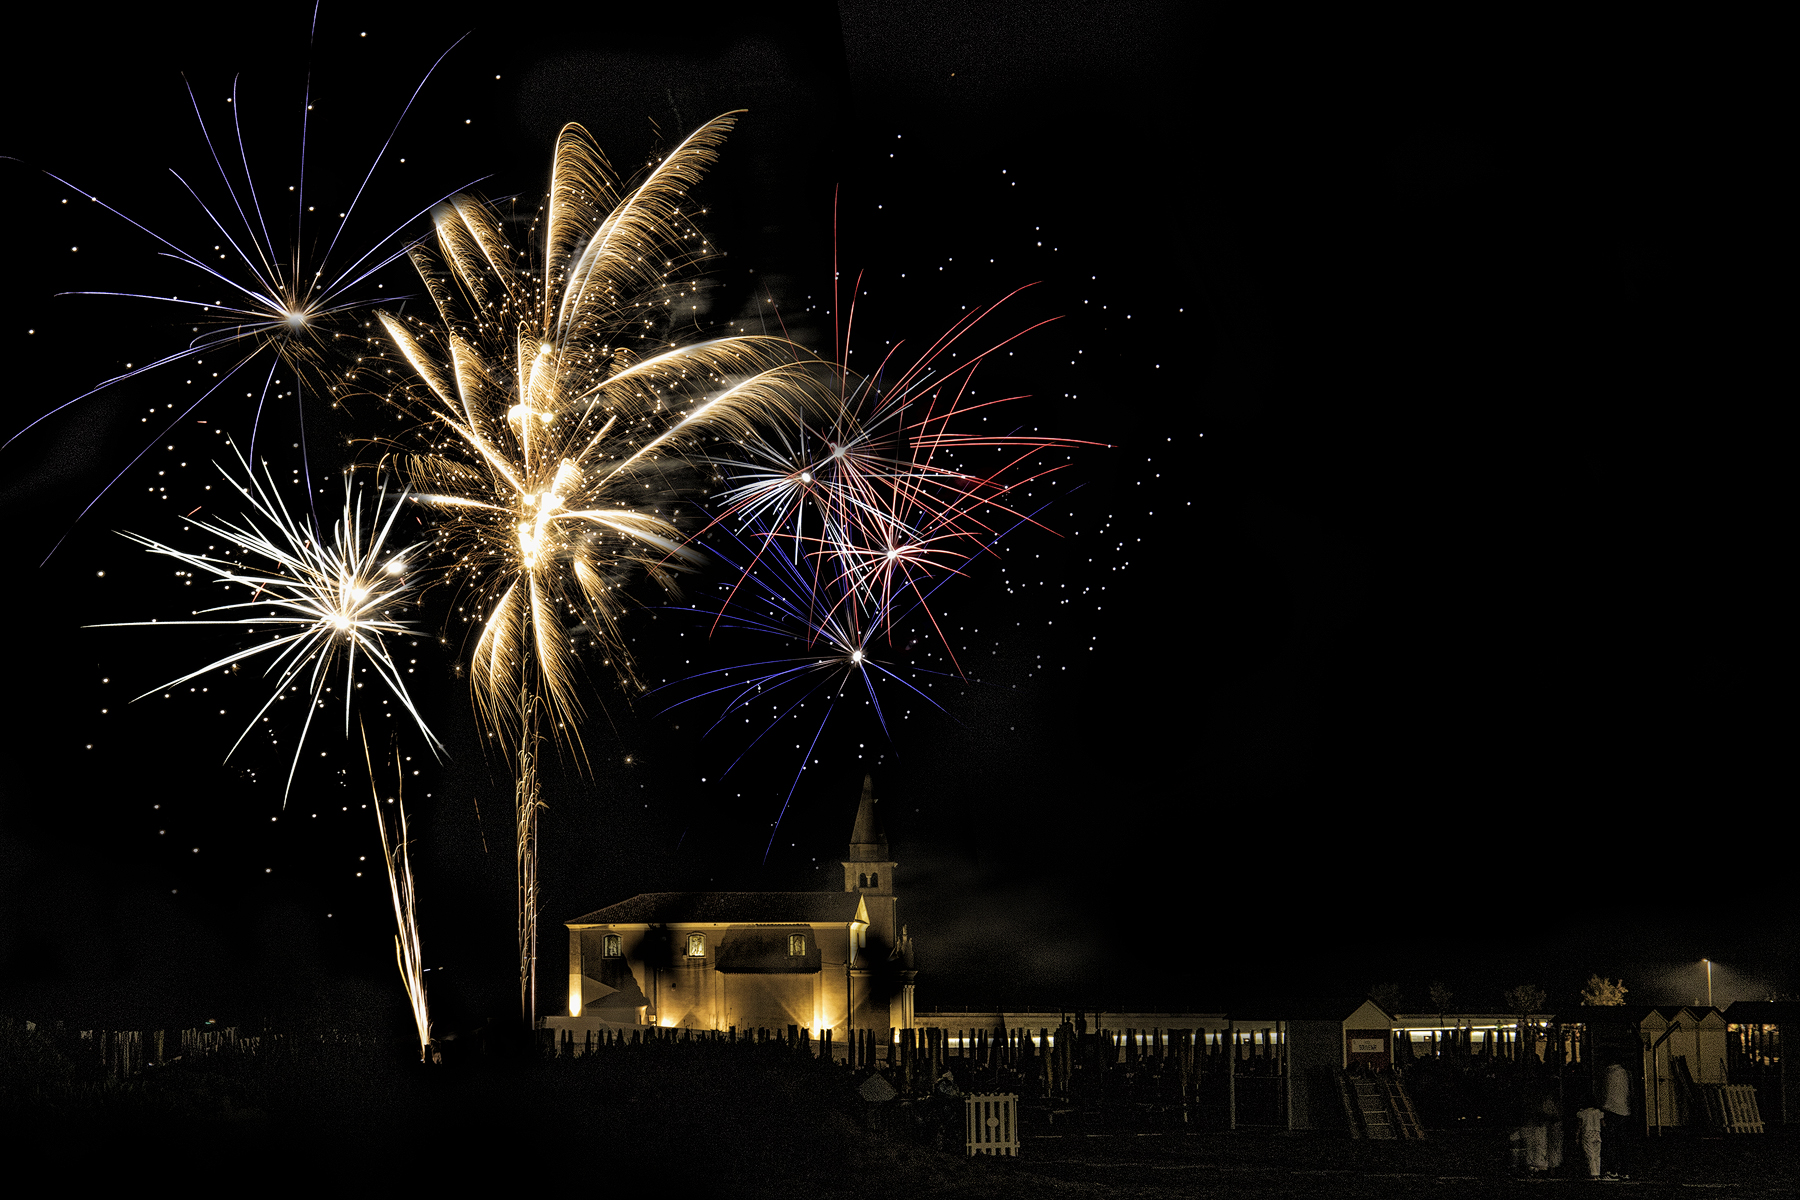 Fireworks in Caorle...